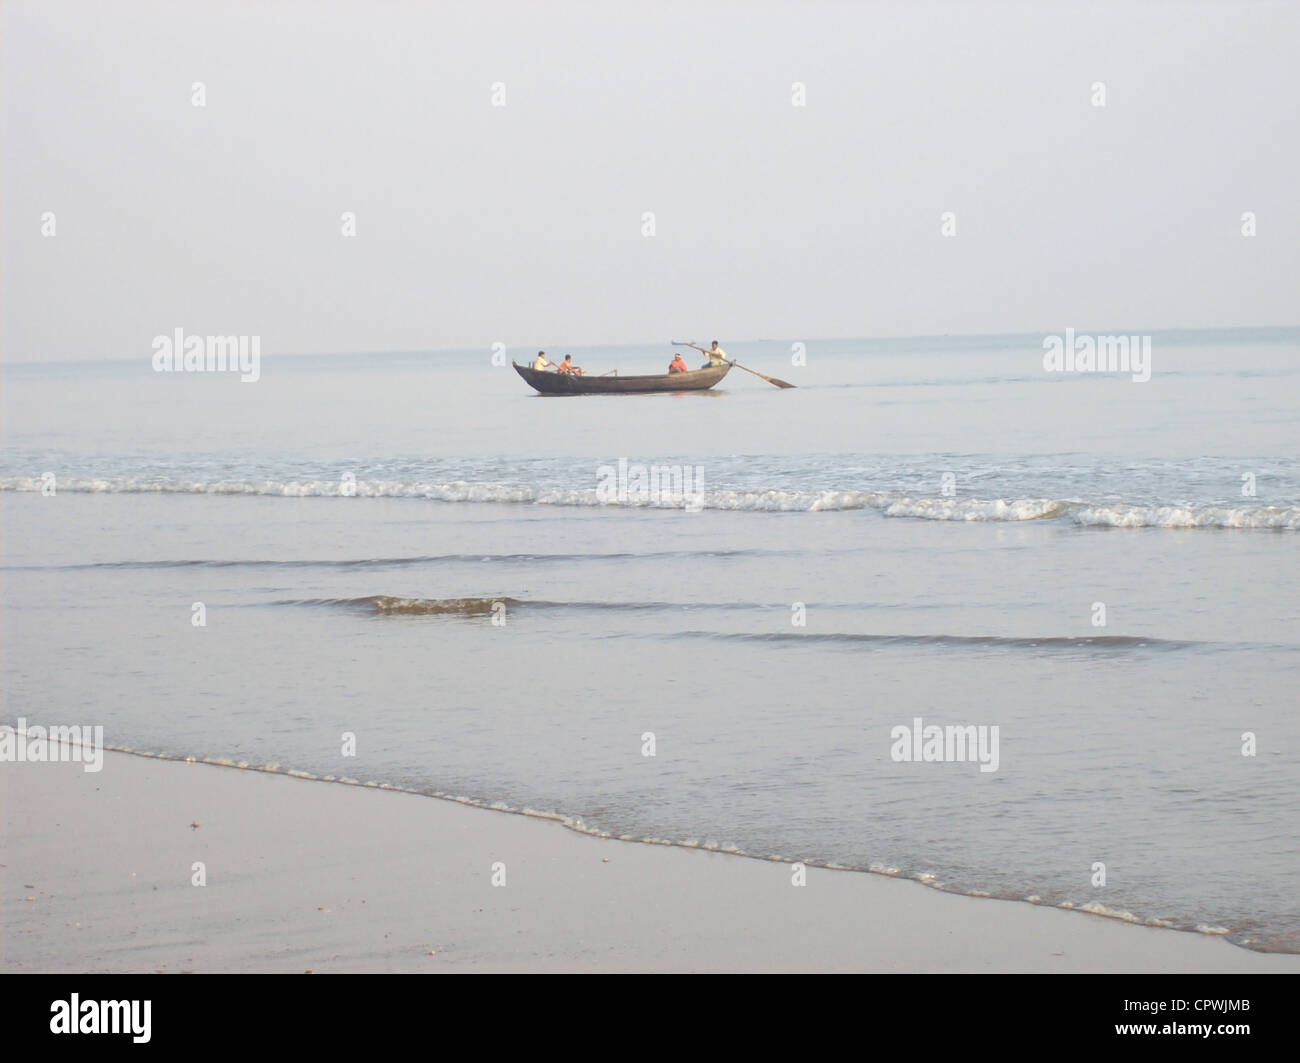 Boatmen moving their paddles to come at land during high tide. - Stock Image